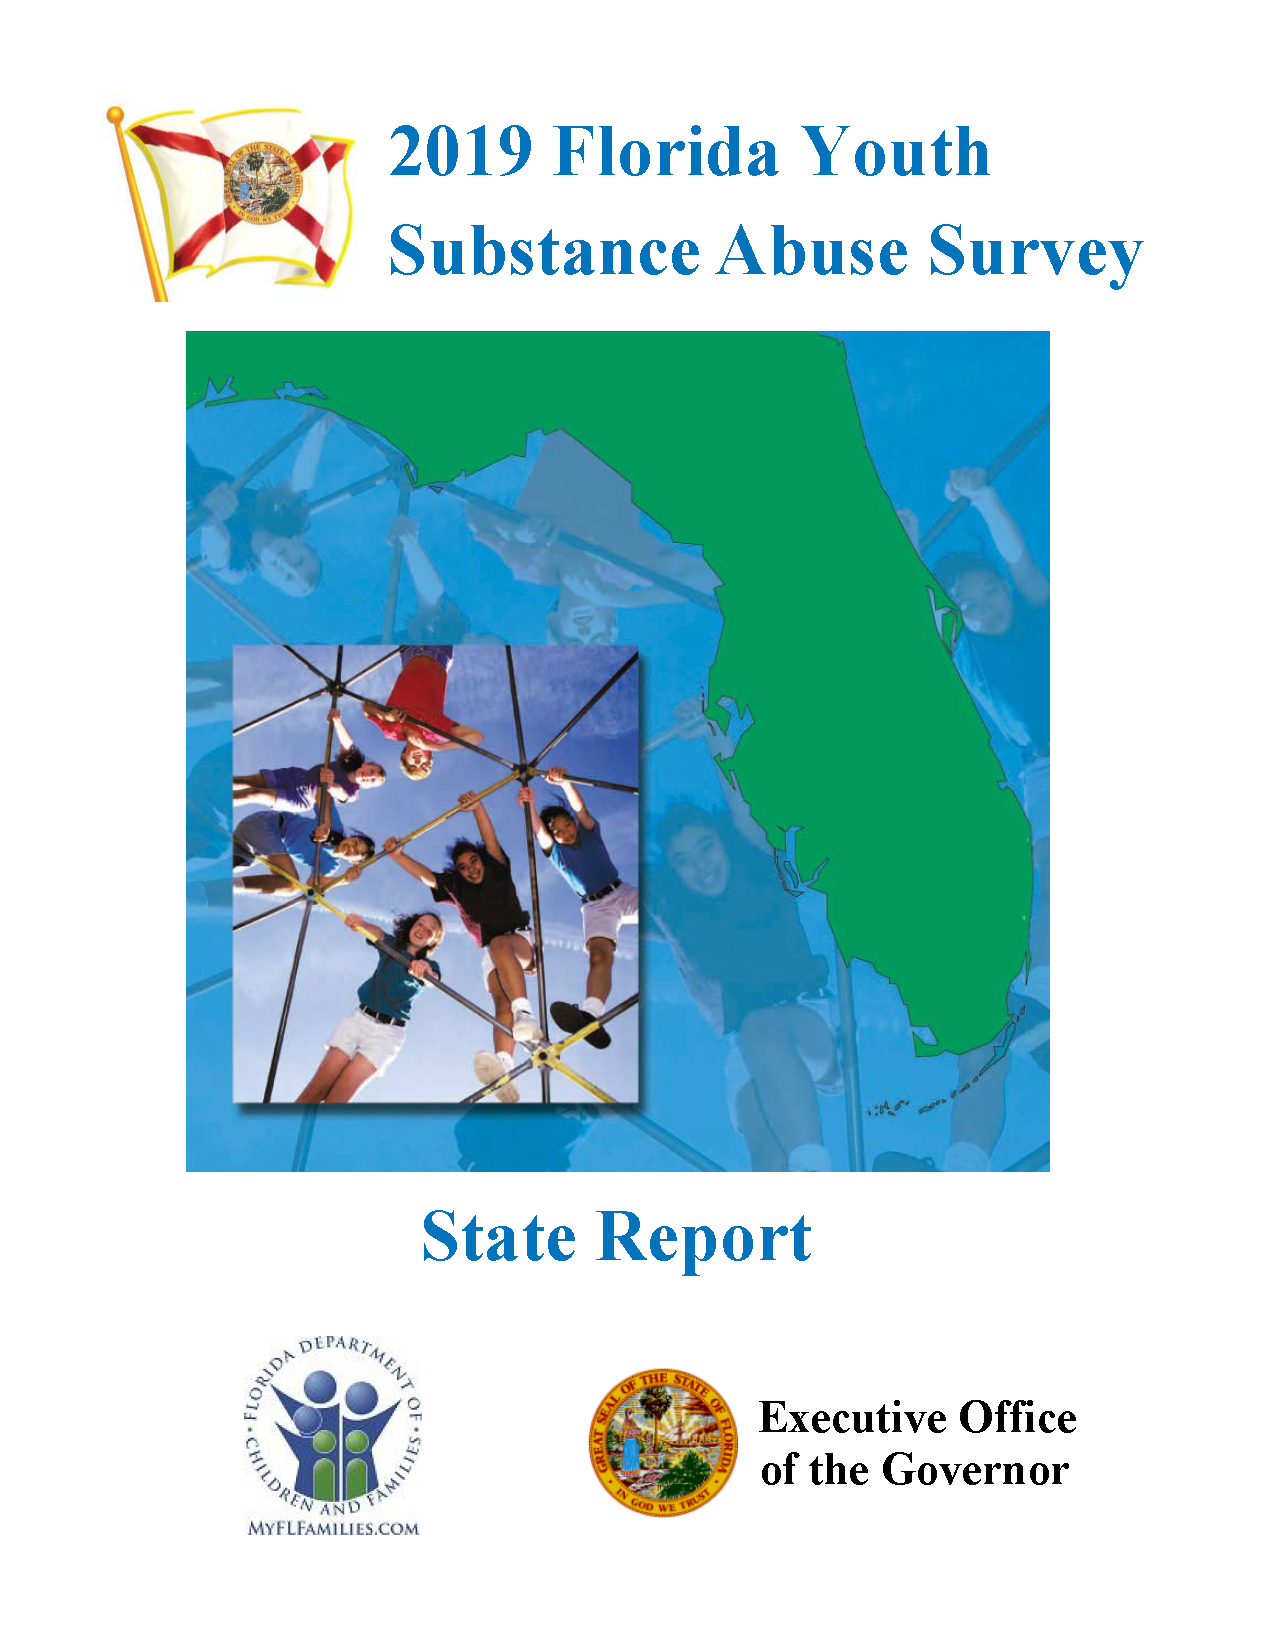 2019 Florida Youth Substance Abuse Survey (FYSAS) Report - Cover